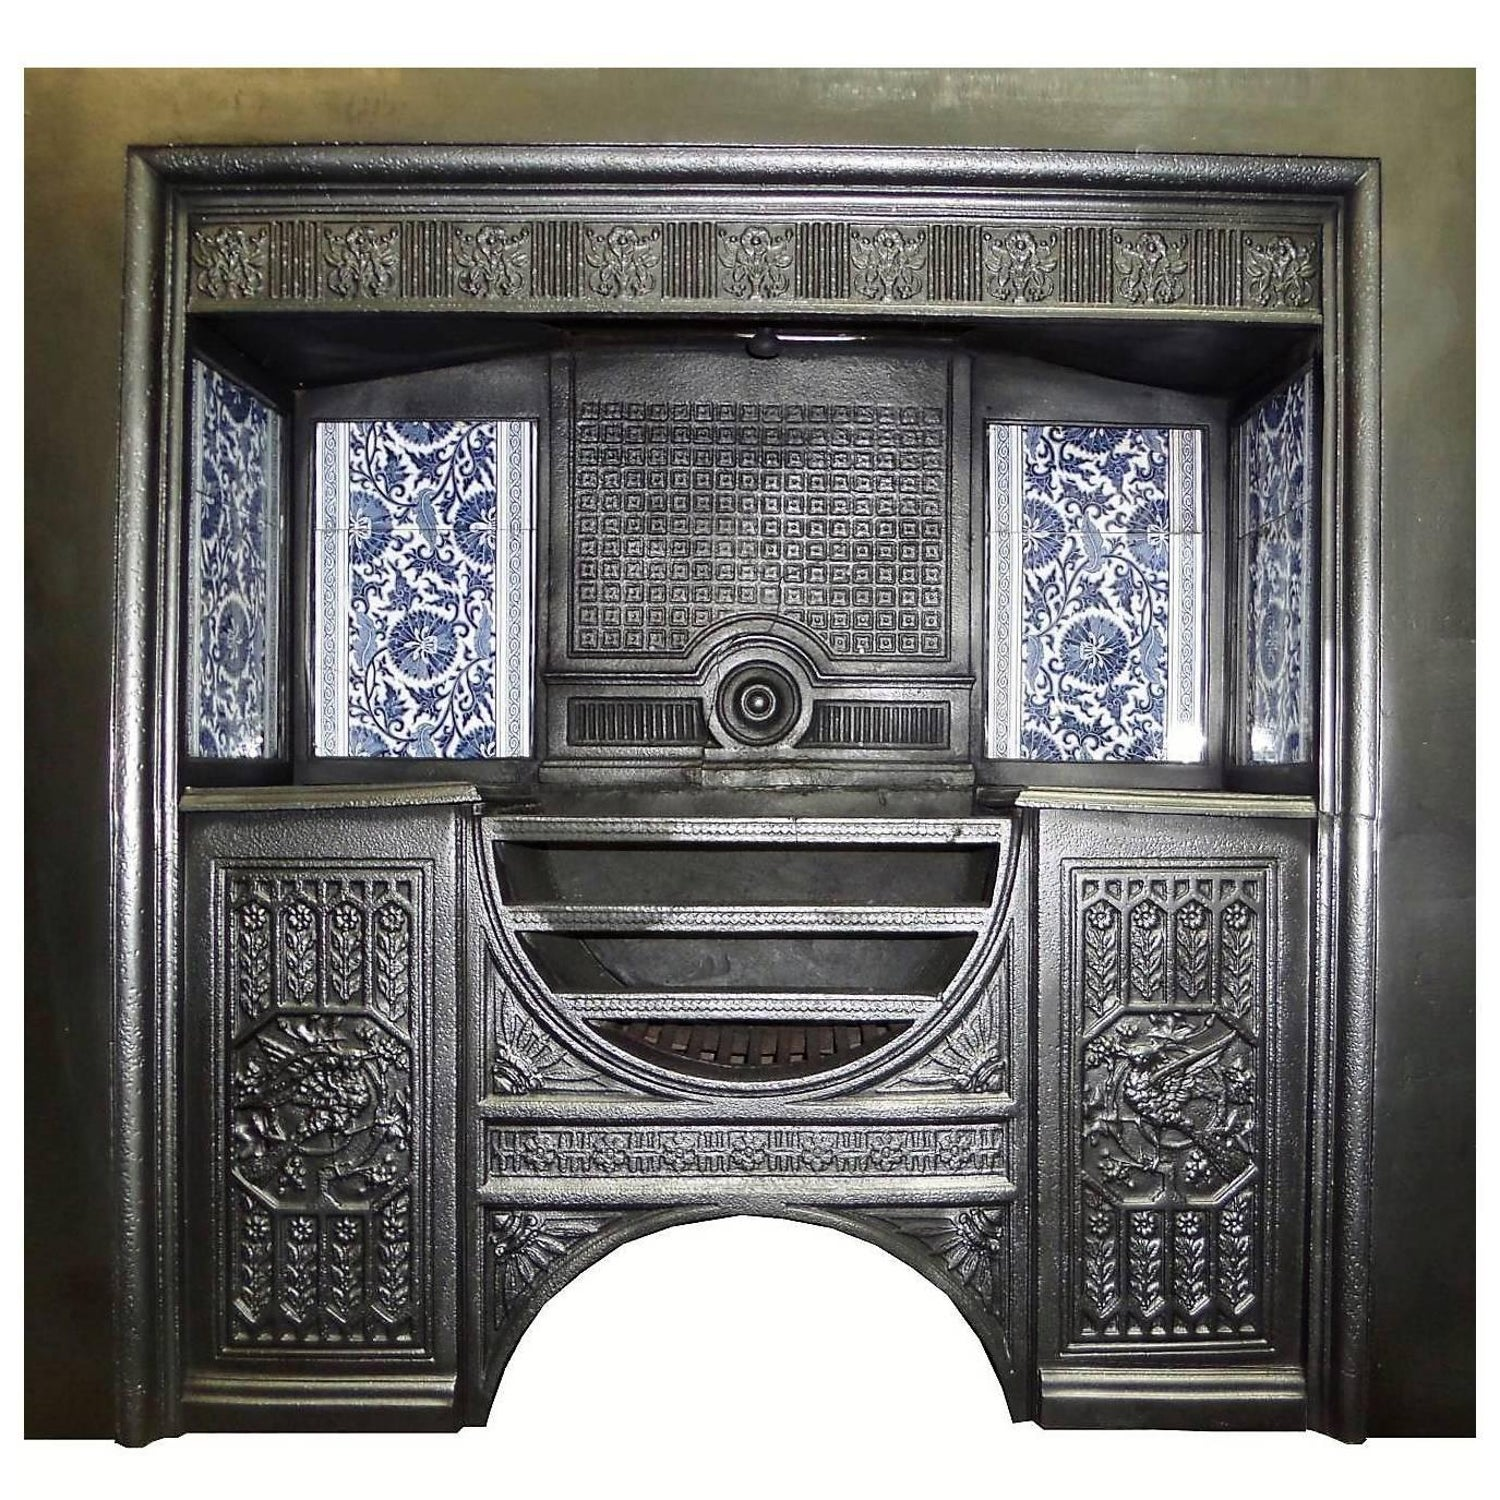 19th century victorian hob grate fire insert with william morris